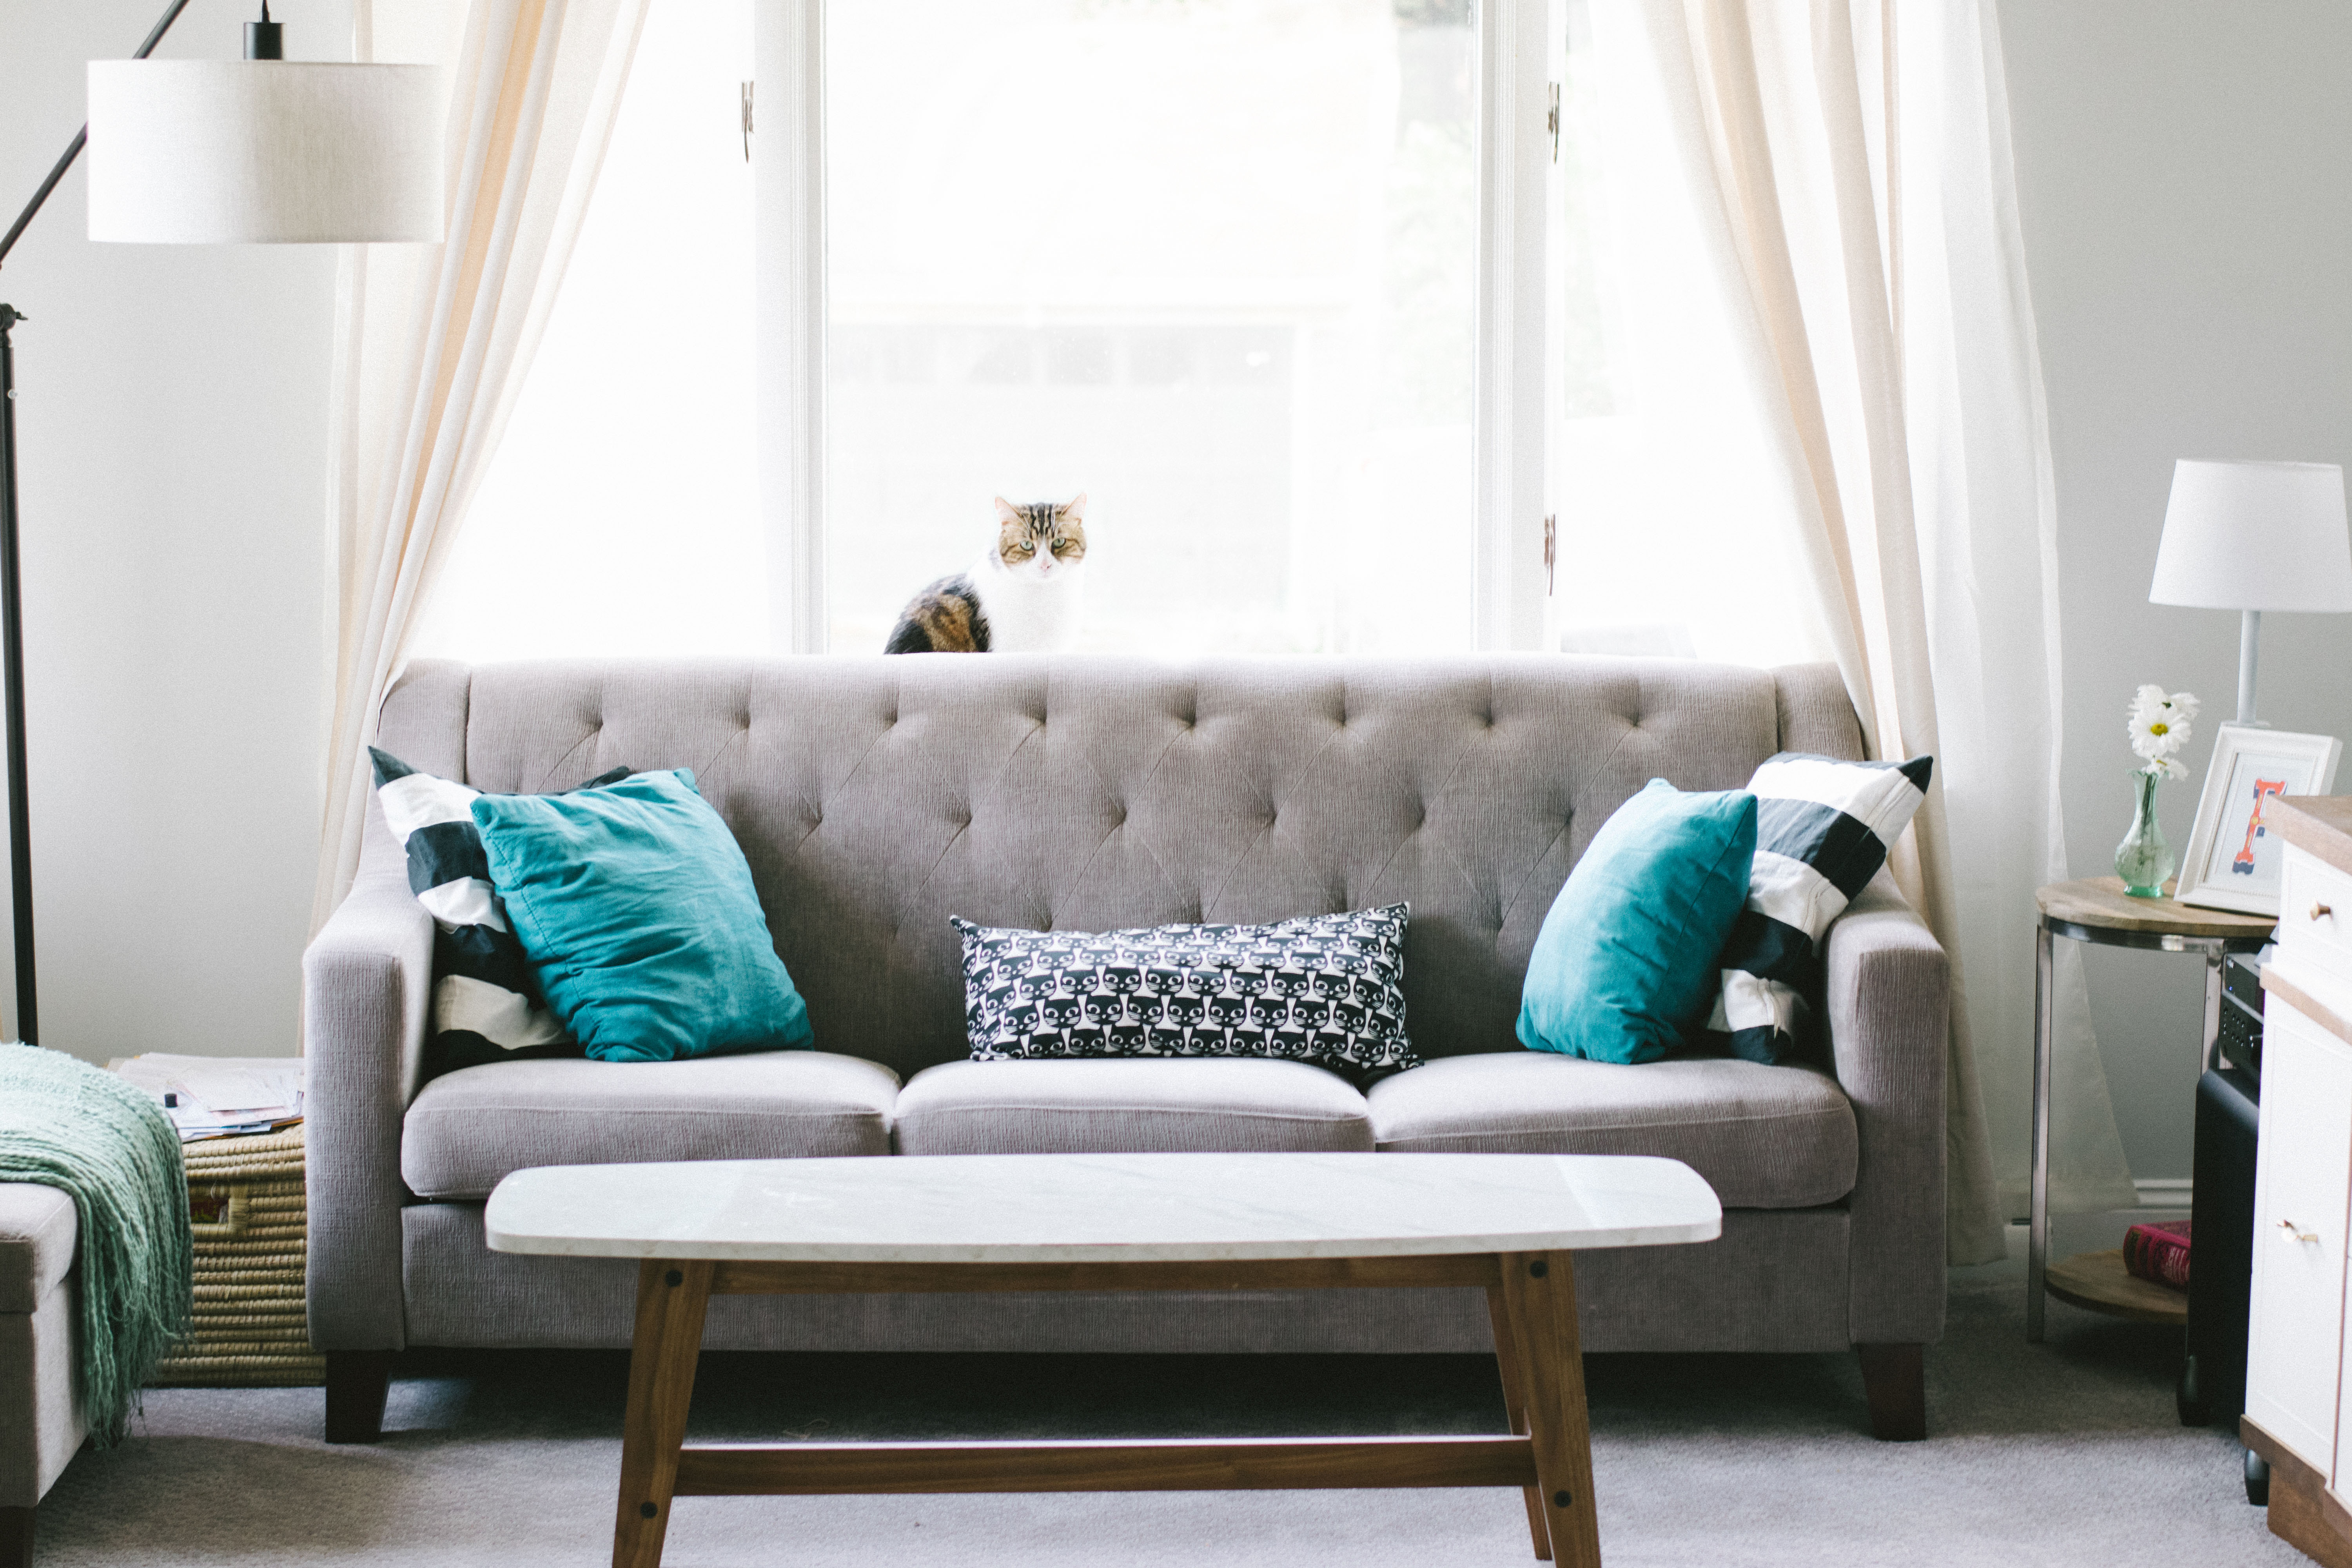 Interior photo, grey couch with cat